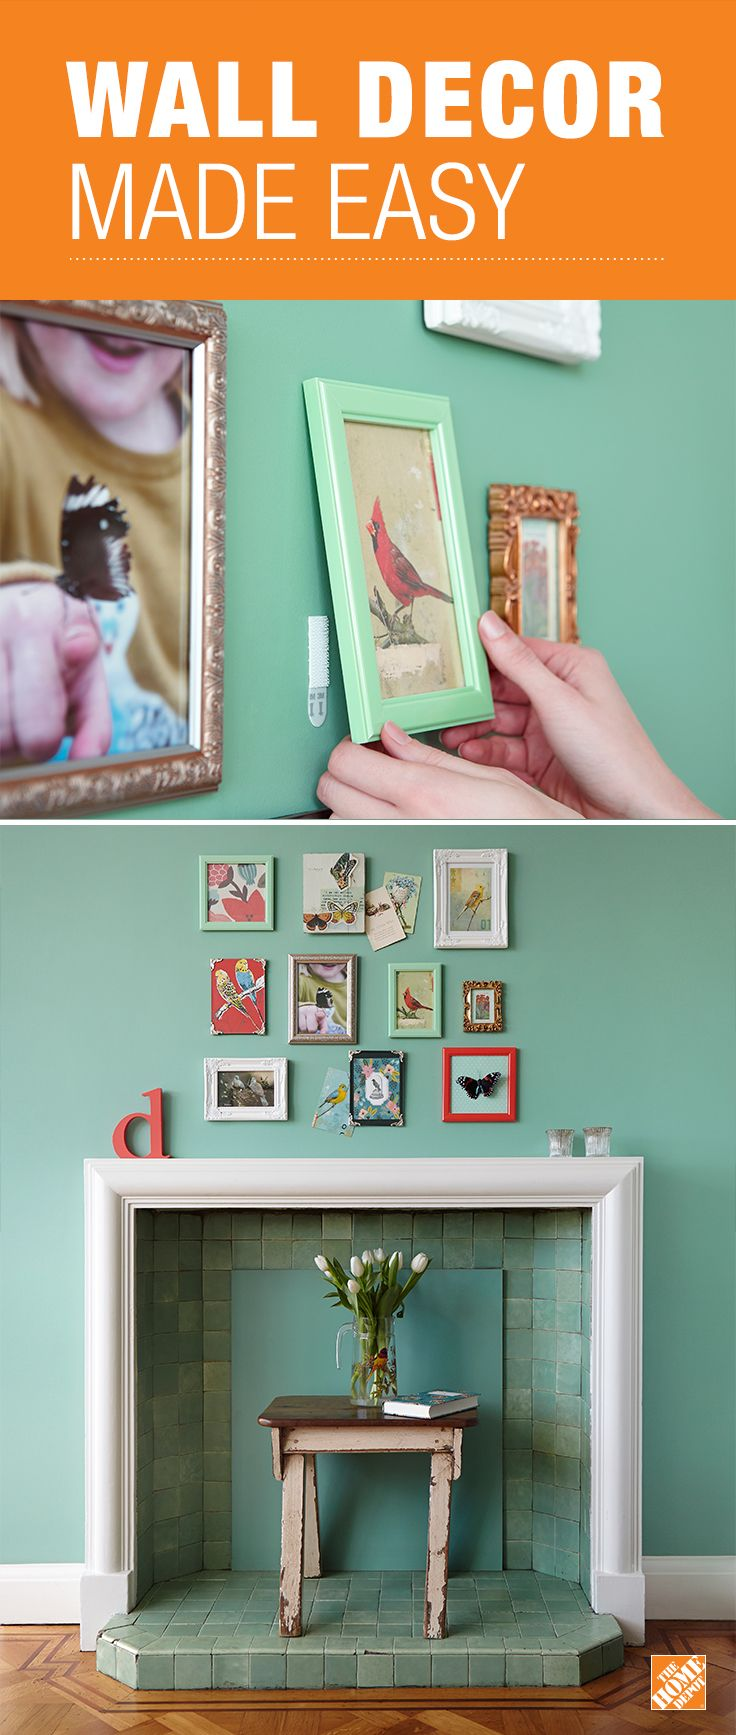 Brilliant idea for no-damage wall décor: Command Picture Hanging Strips are great for dorms, offices and in your home. Since each strip can be removed and reapplied without nail holes, cracked plaster or sticky residue, it's easy to level artwork and arrange creative layouts. Works on a variety of surfaces, including tile and metal. Holds strong on frames up to 24 x 30 inches.